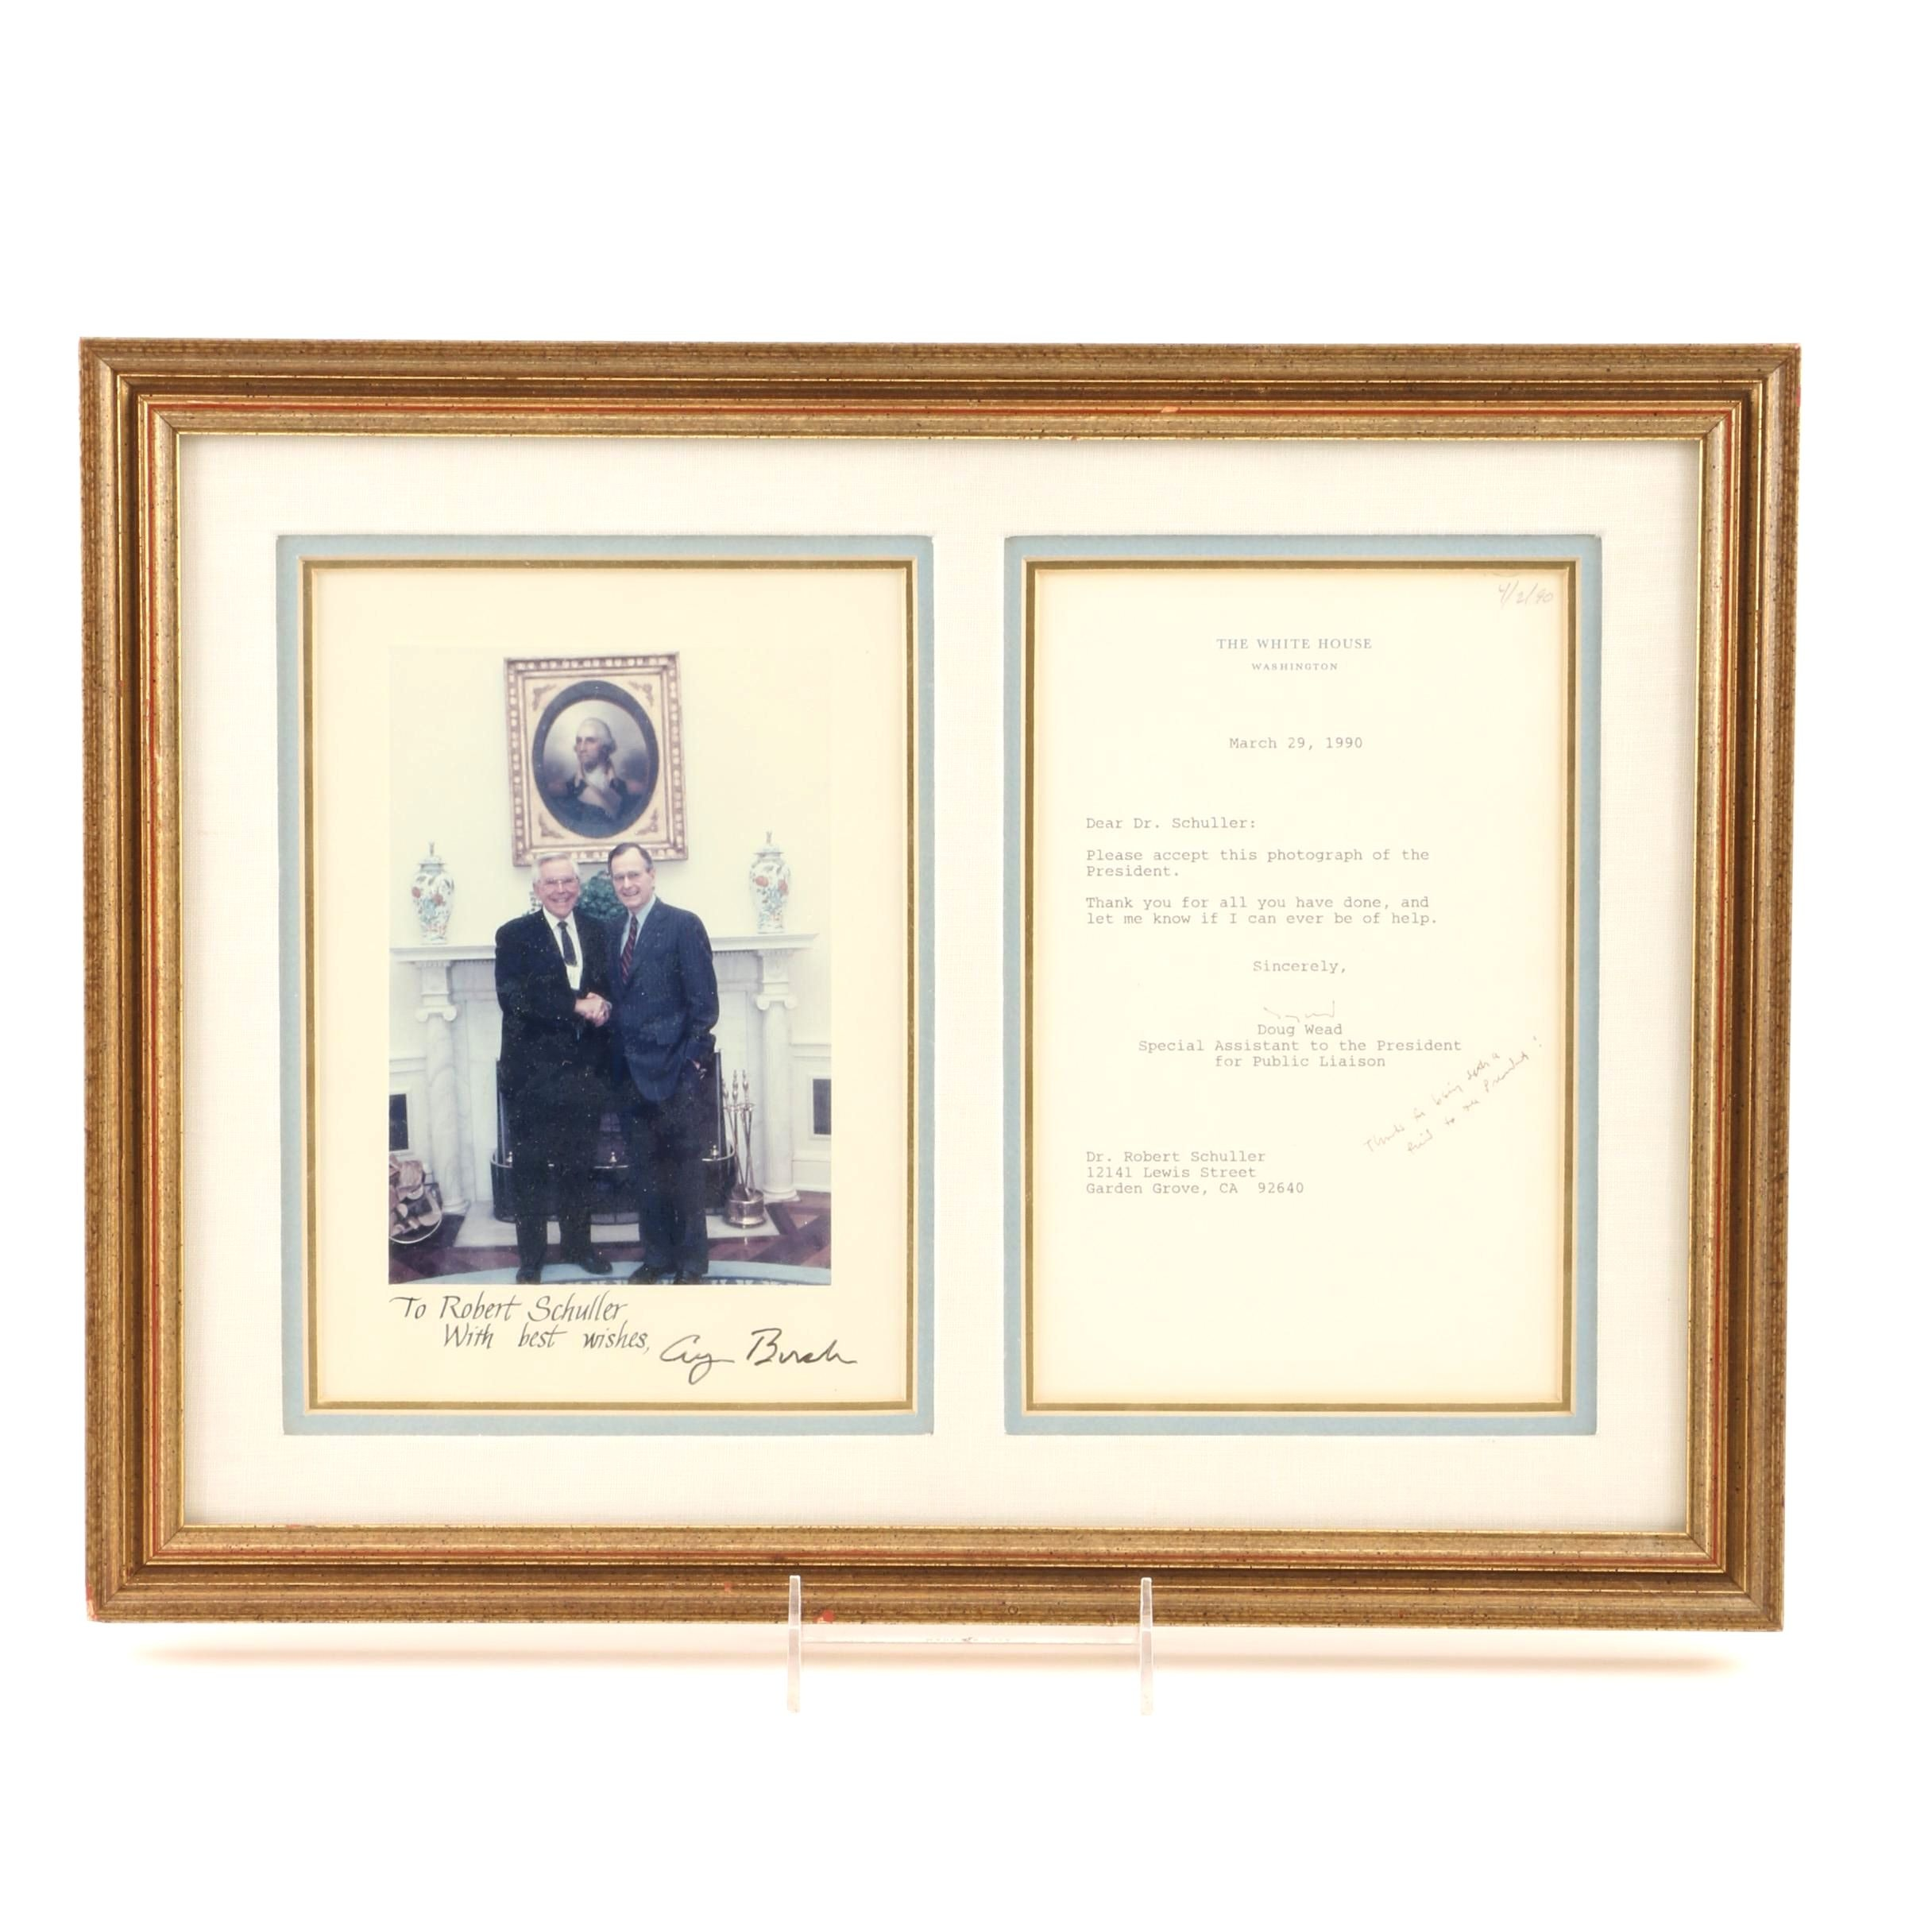 1990 Signed Colored Photograph of President George Bush